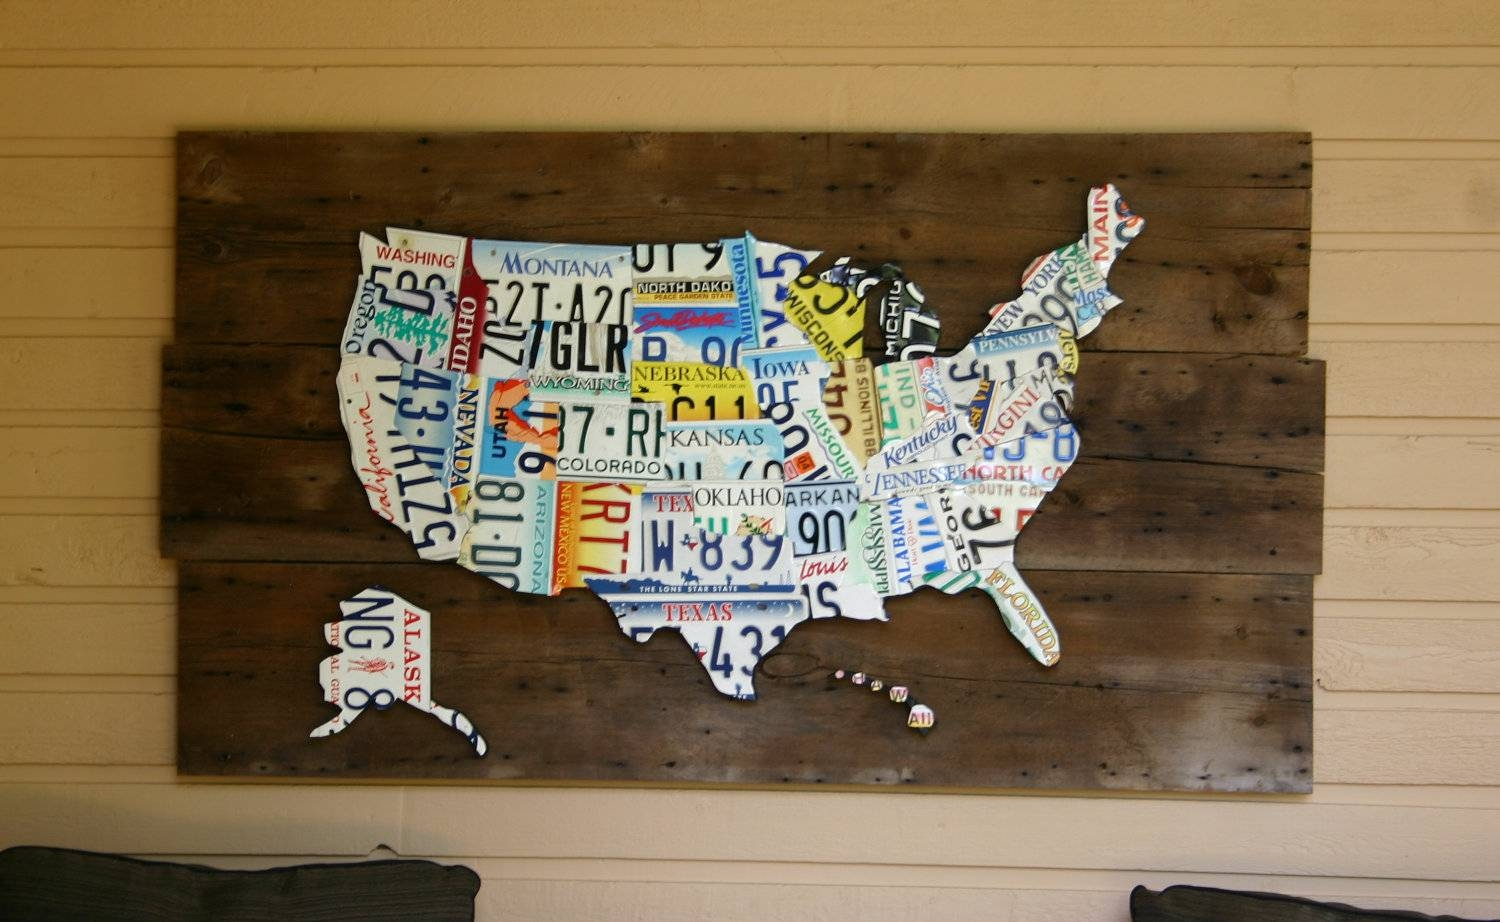 35 License Plate Wall Art My Wall Of Life With Regard To Best And Newest License Plate Map Wall Art (Gallery 1 of 20)